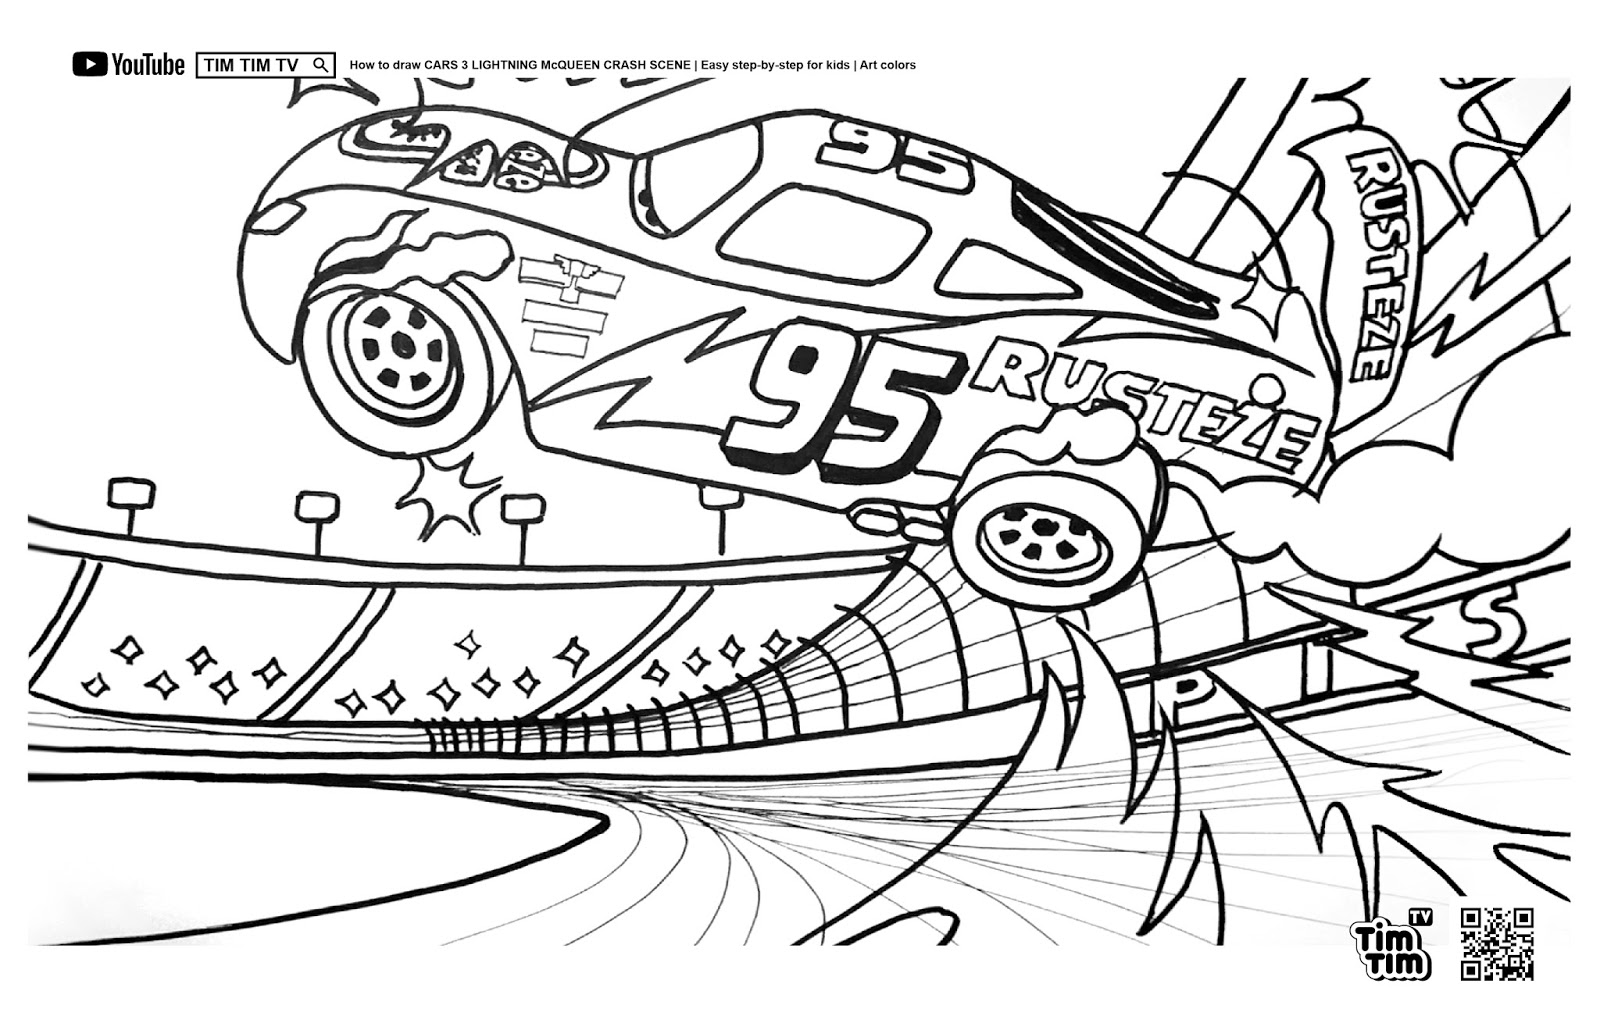 TIM TV Coloring Page